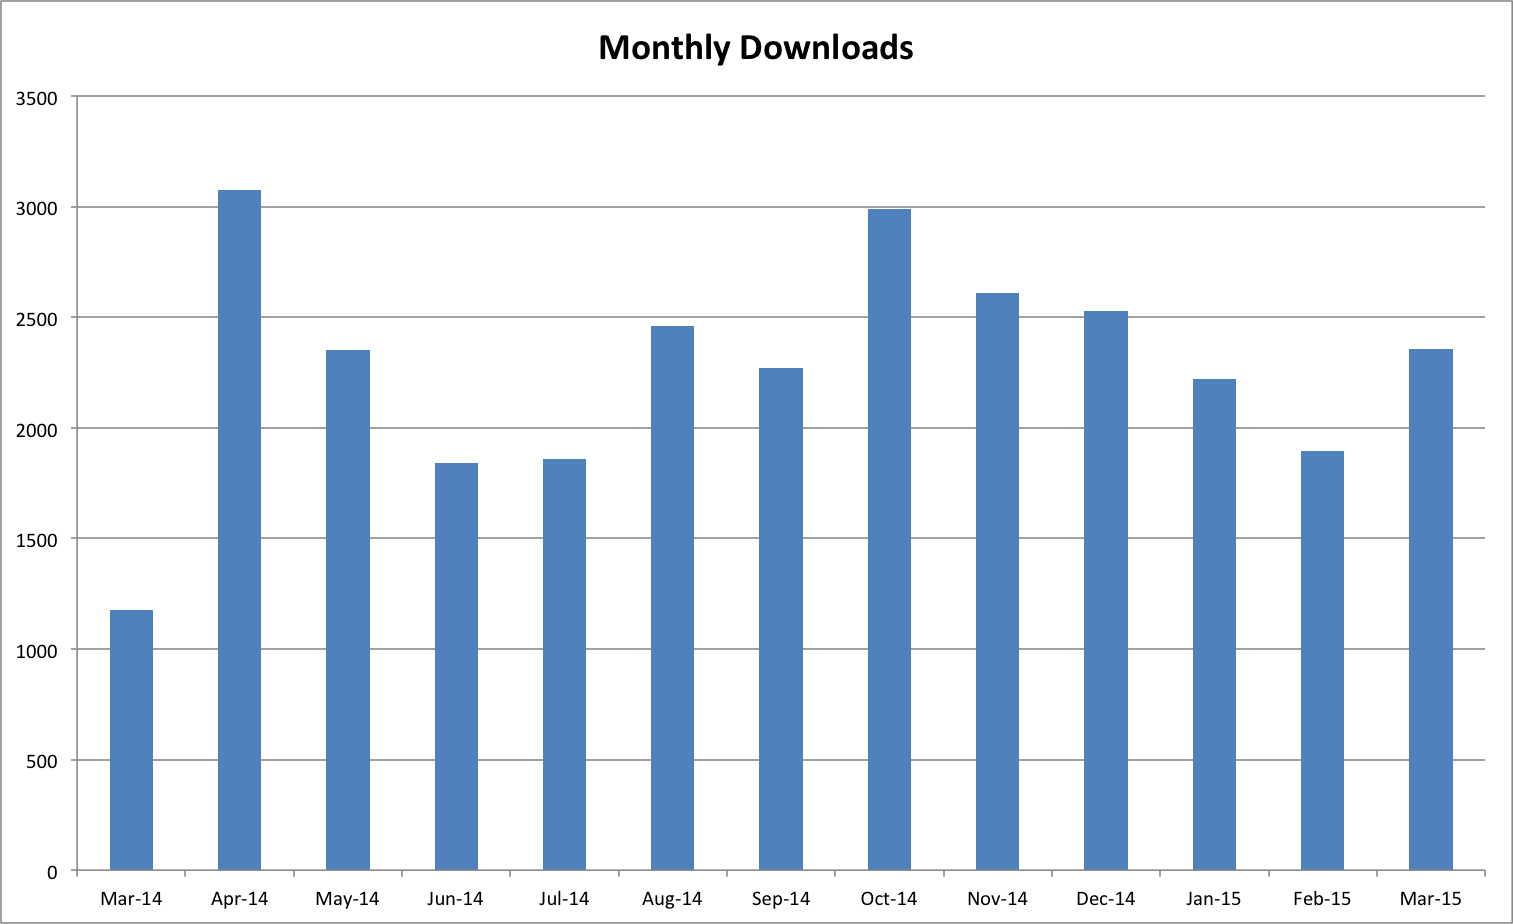 OAPEN Monthly Downloads April 2015